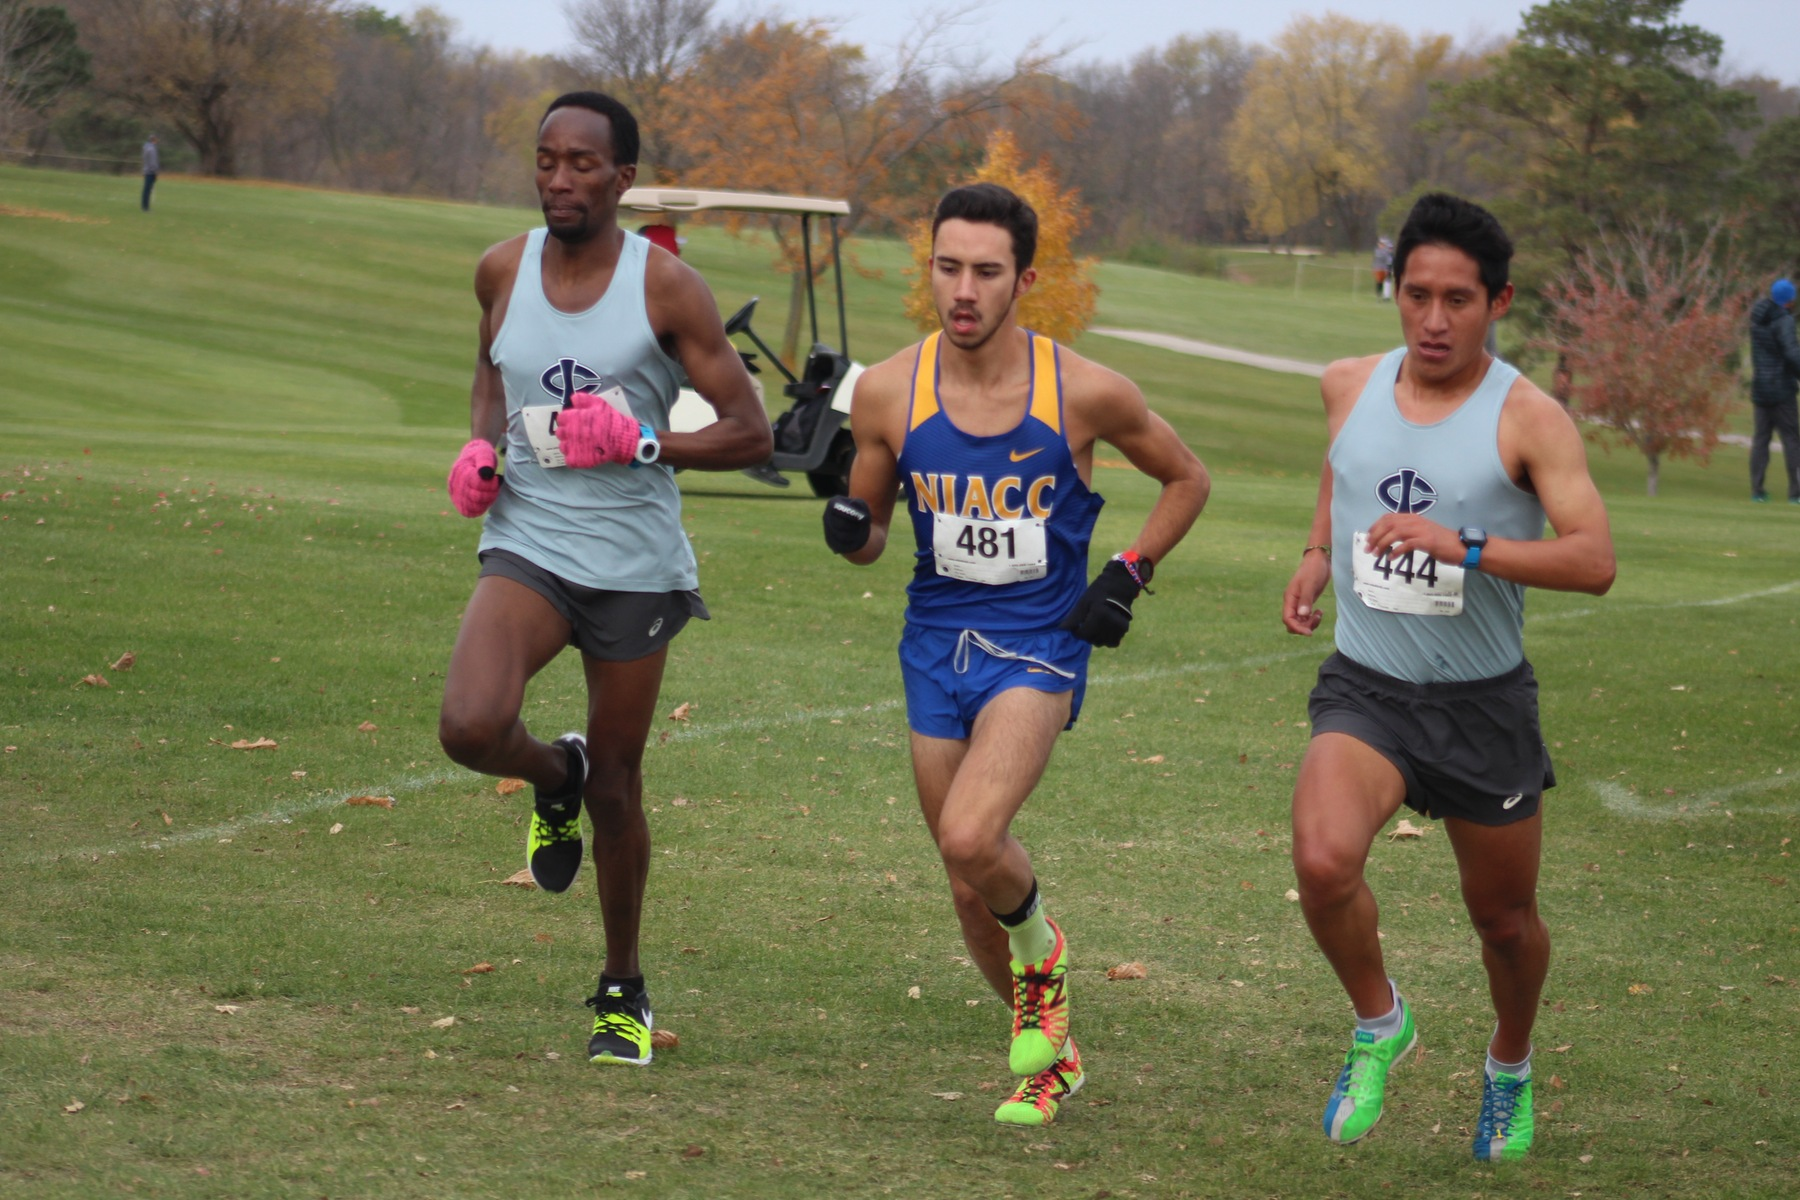 NIACC's Brian Jacques runs to a third-place finish at Sunday's regional meet in Fort Dodge.